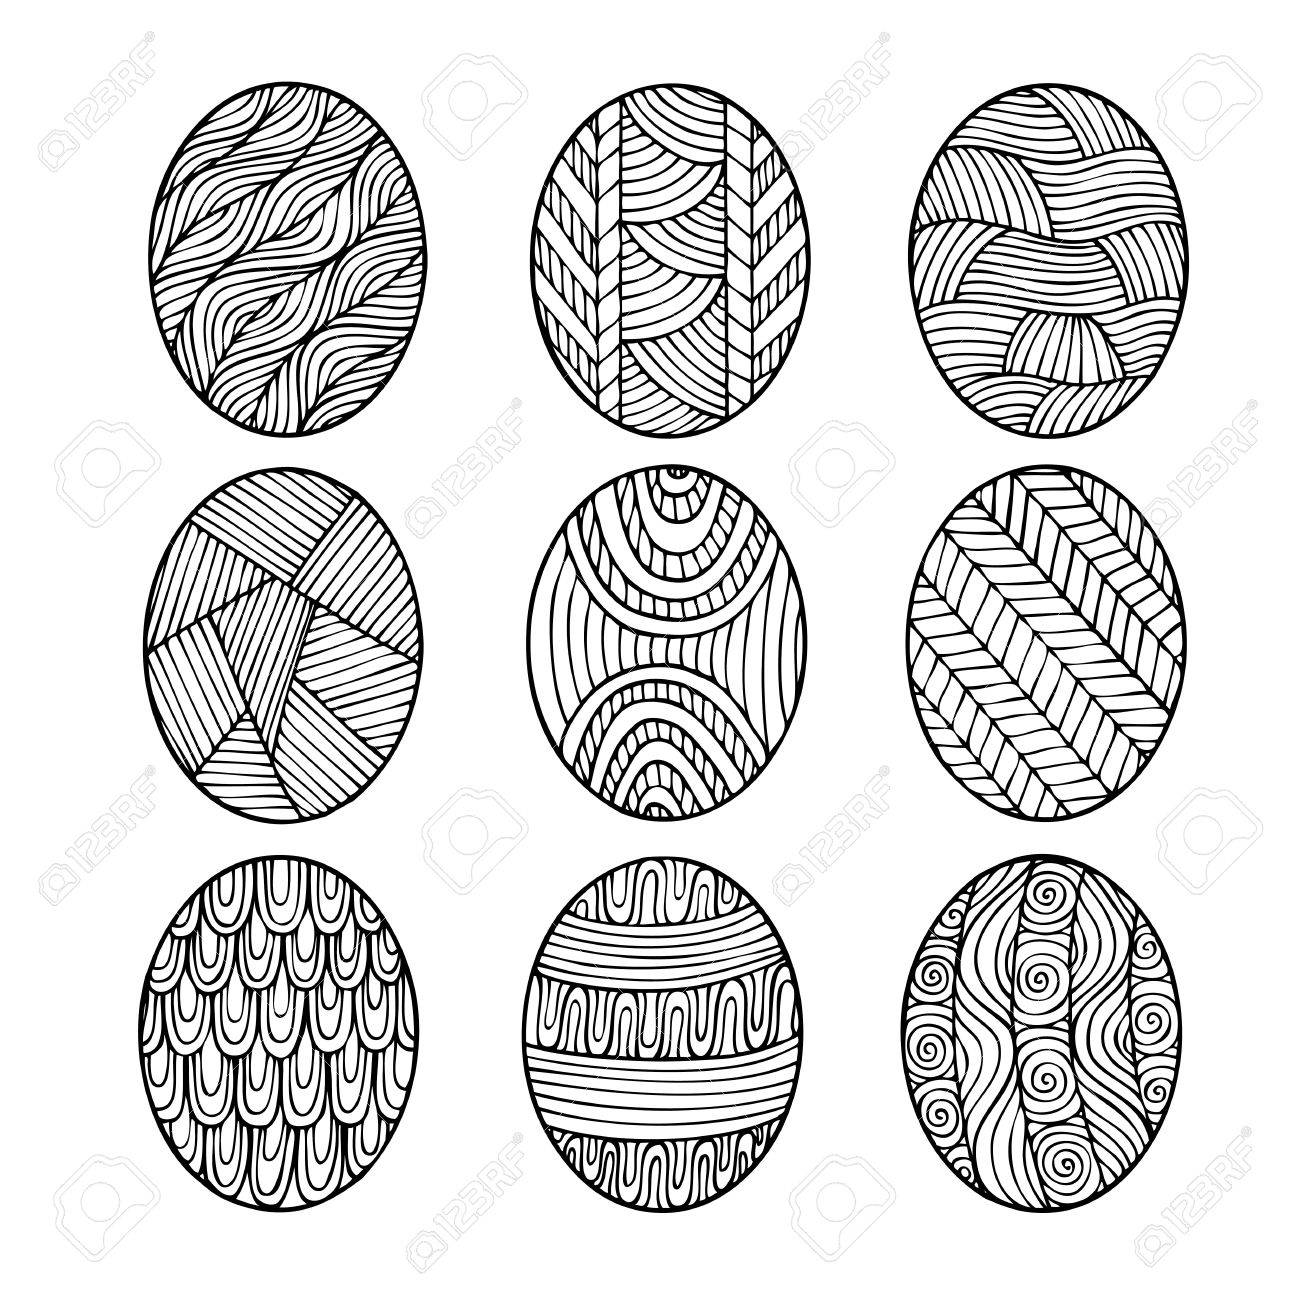 Adult coloring book page design depicting Easter eggs. Coloring..